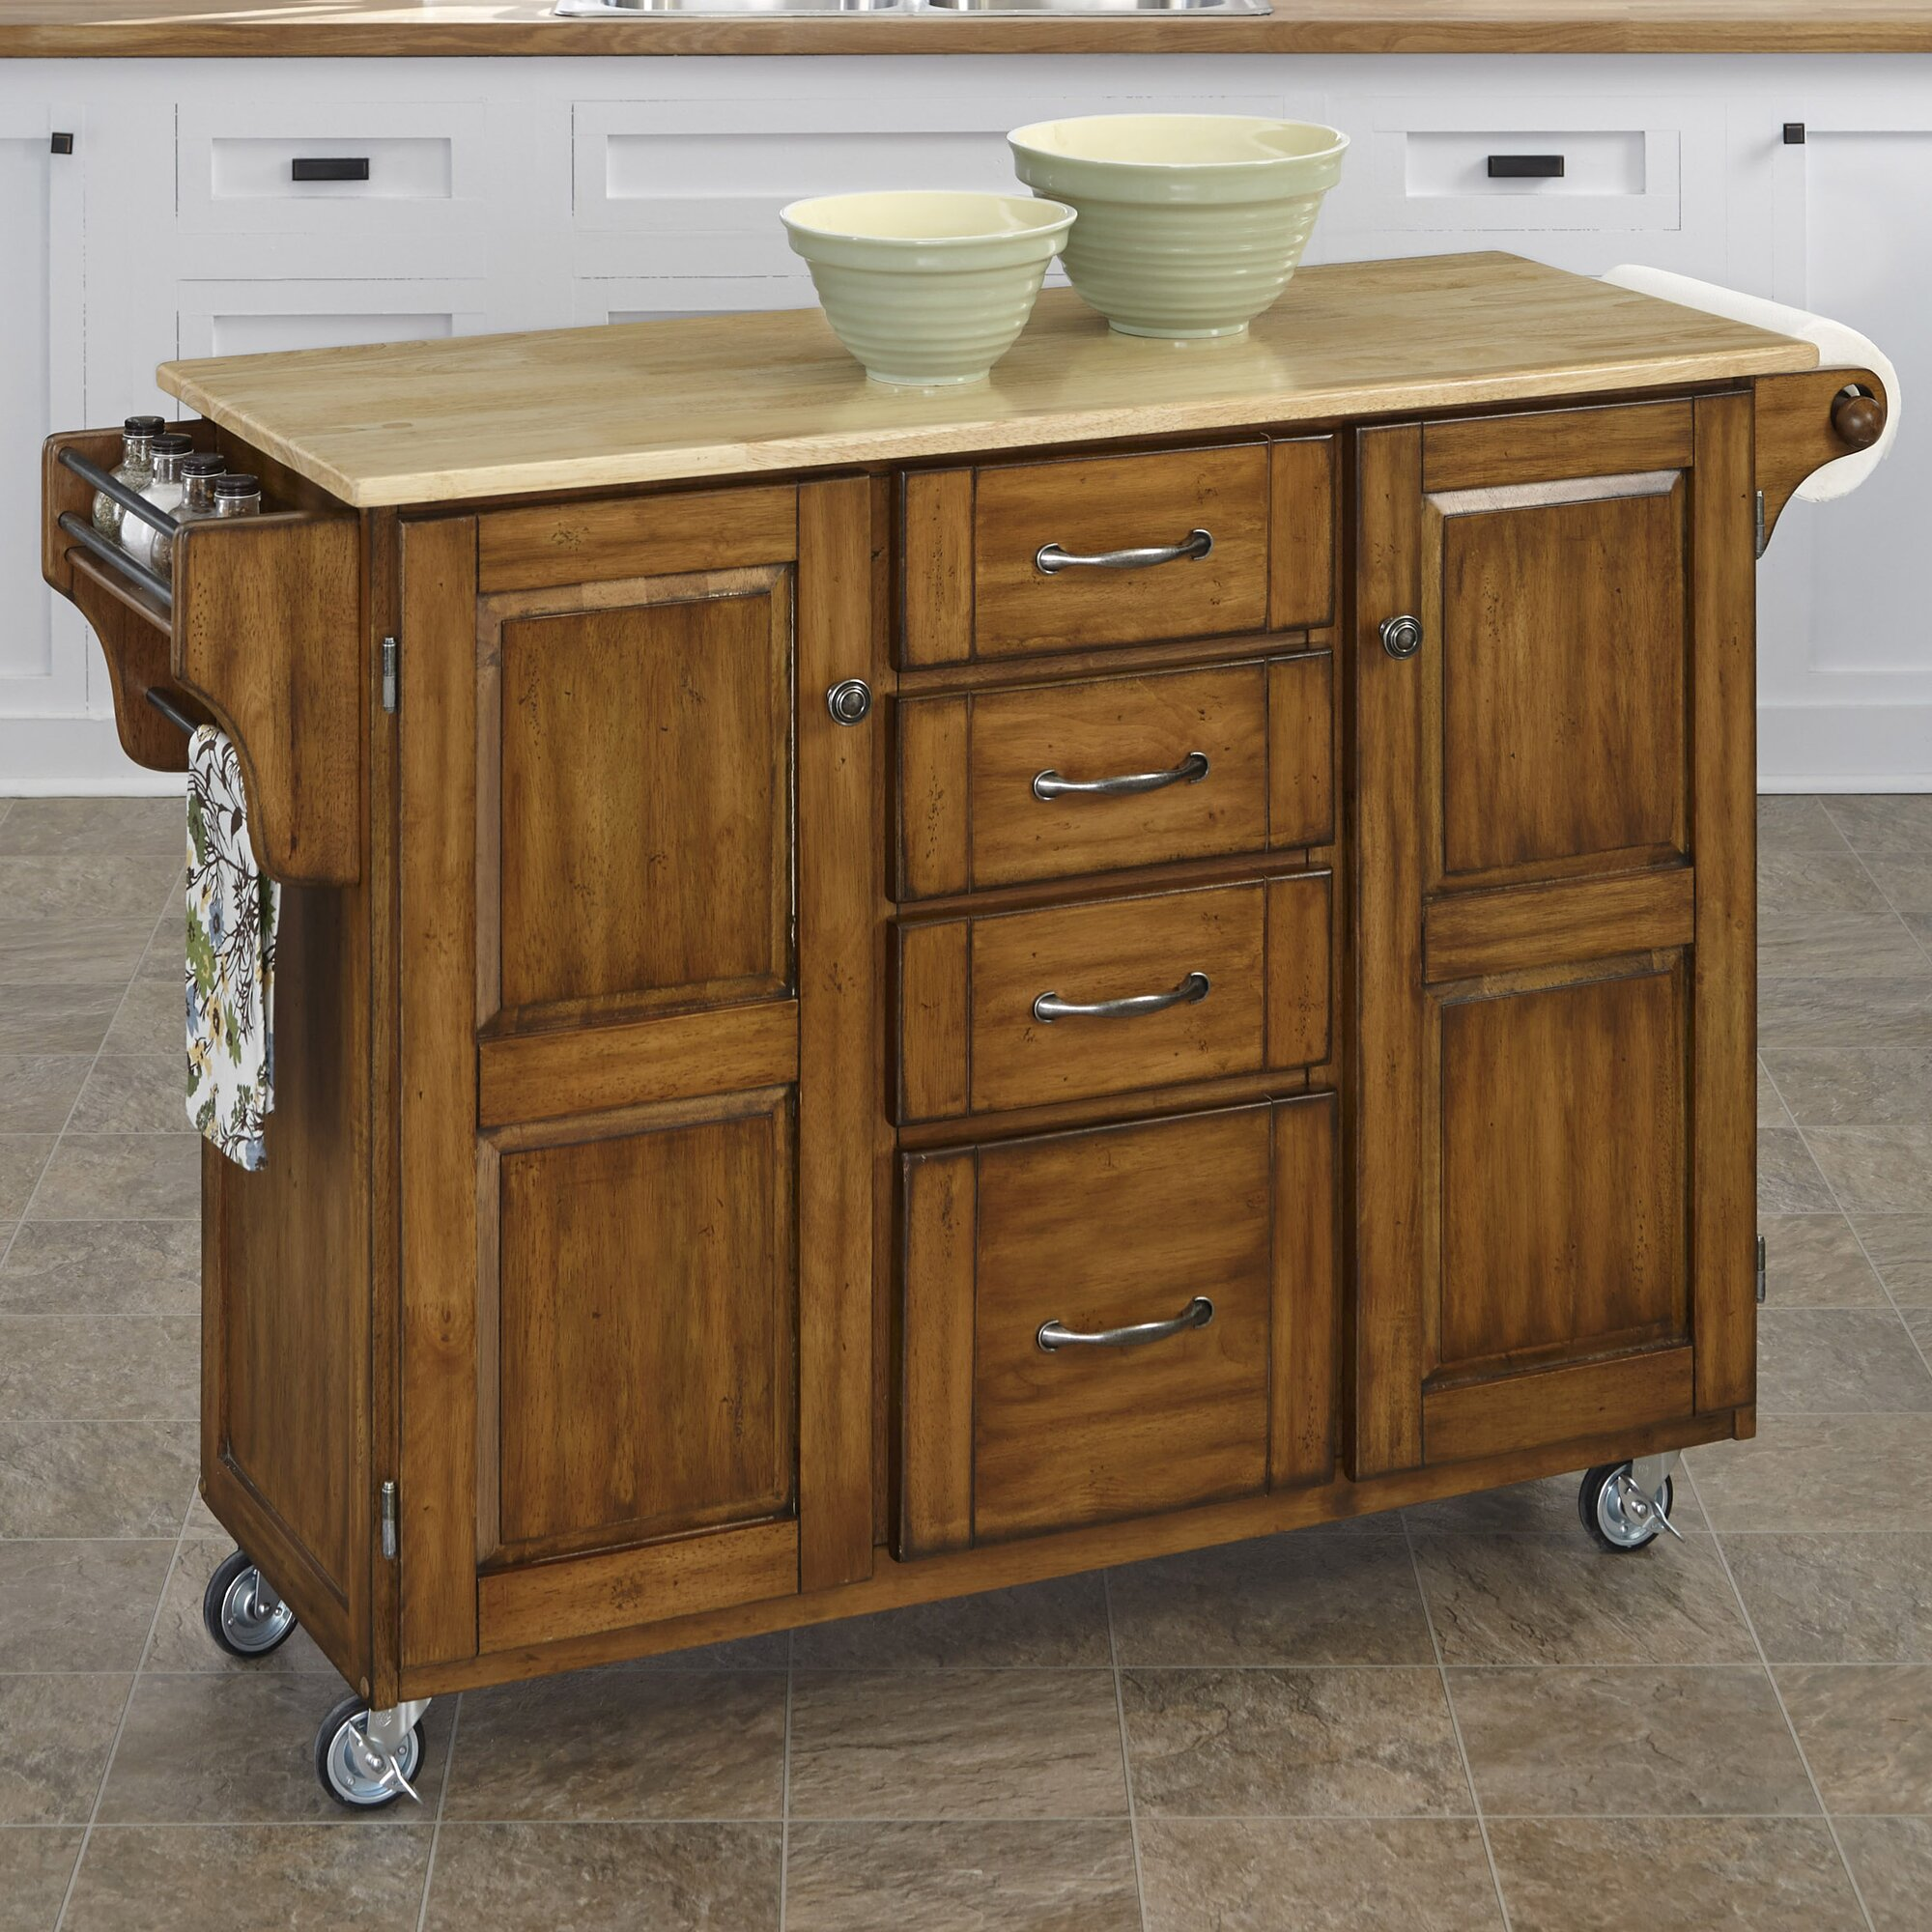 August Grove Adelle-a-Cart Kitchen Island with Butcher ...